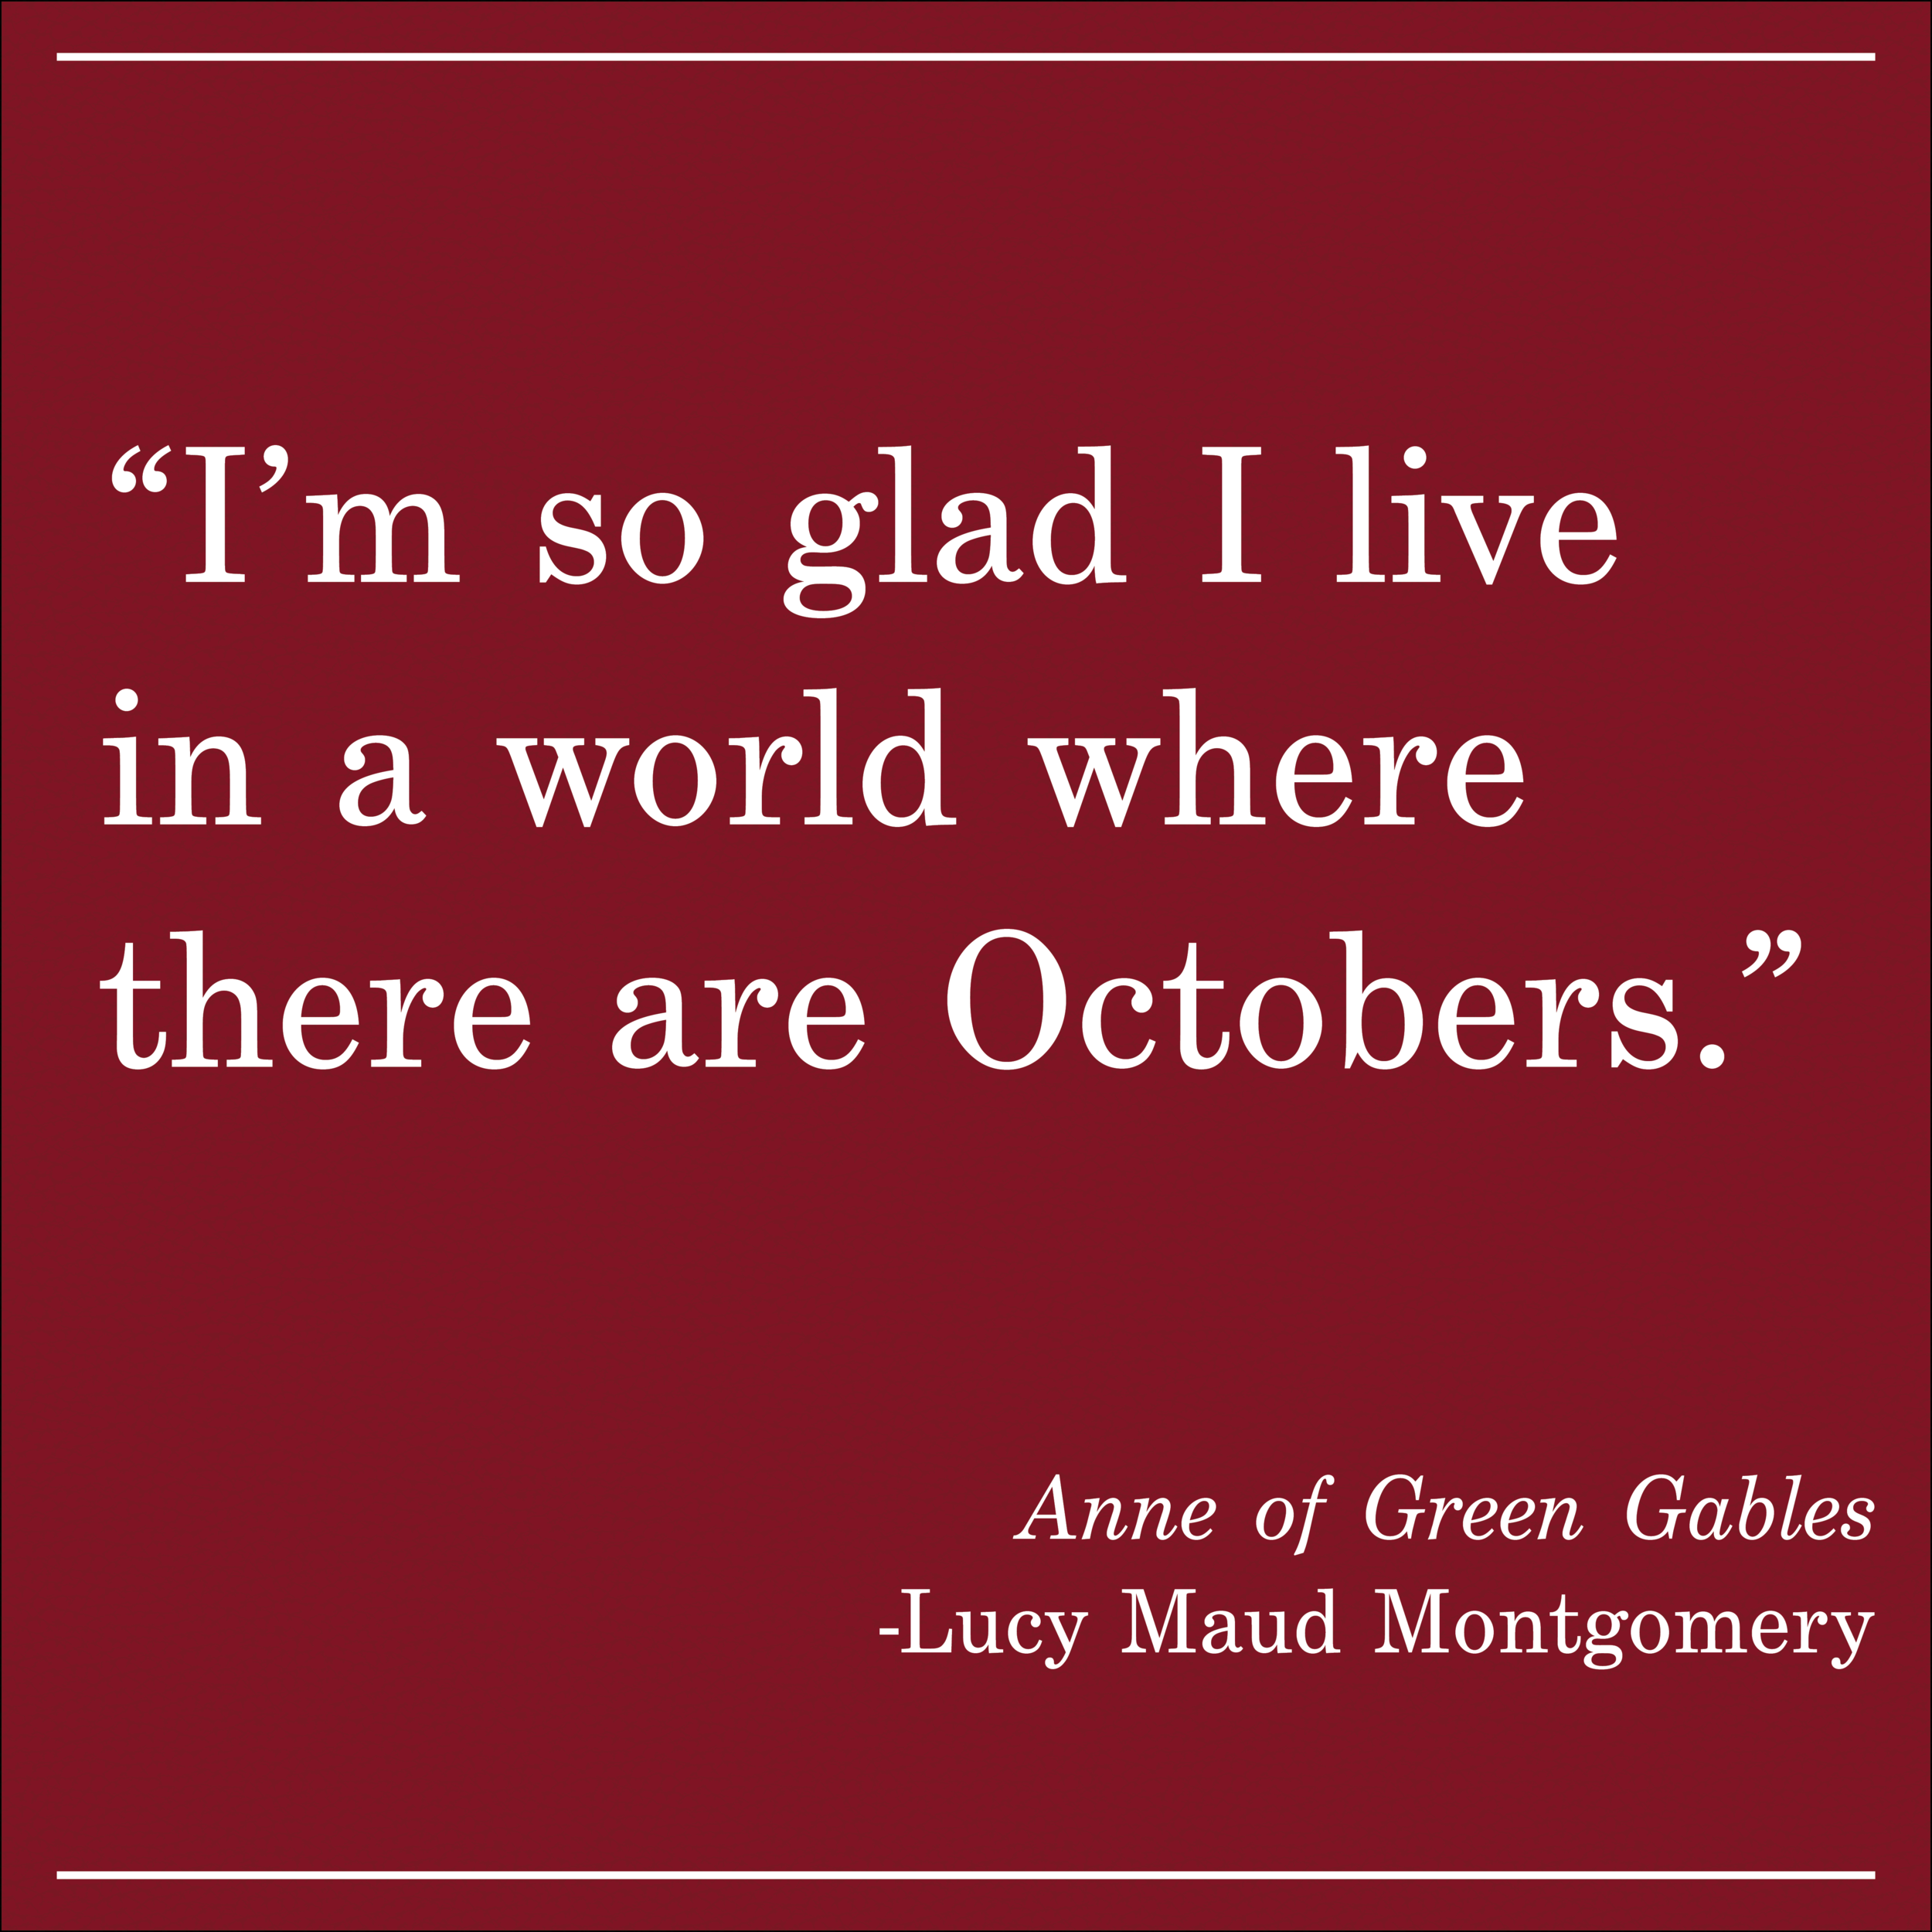 Daily Quote Anne of Green Gables by Lucy Maud Montgomery